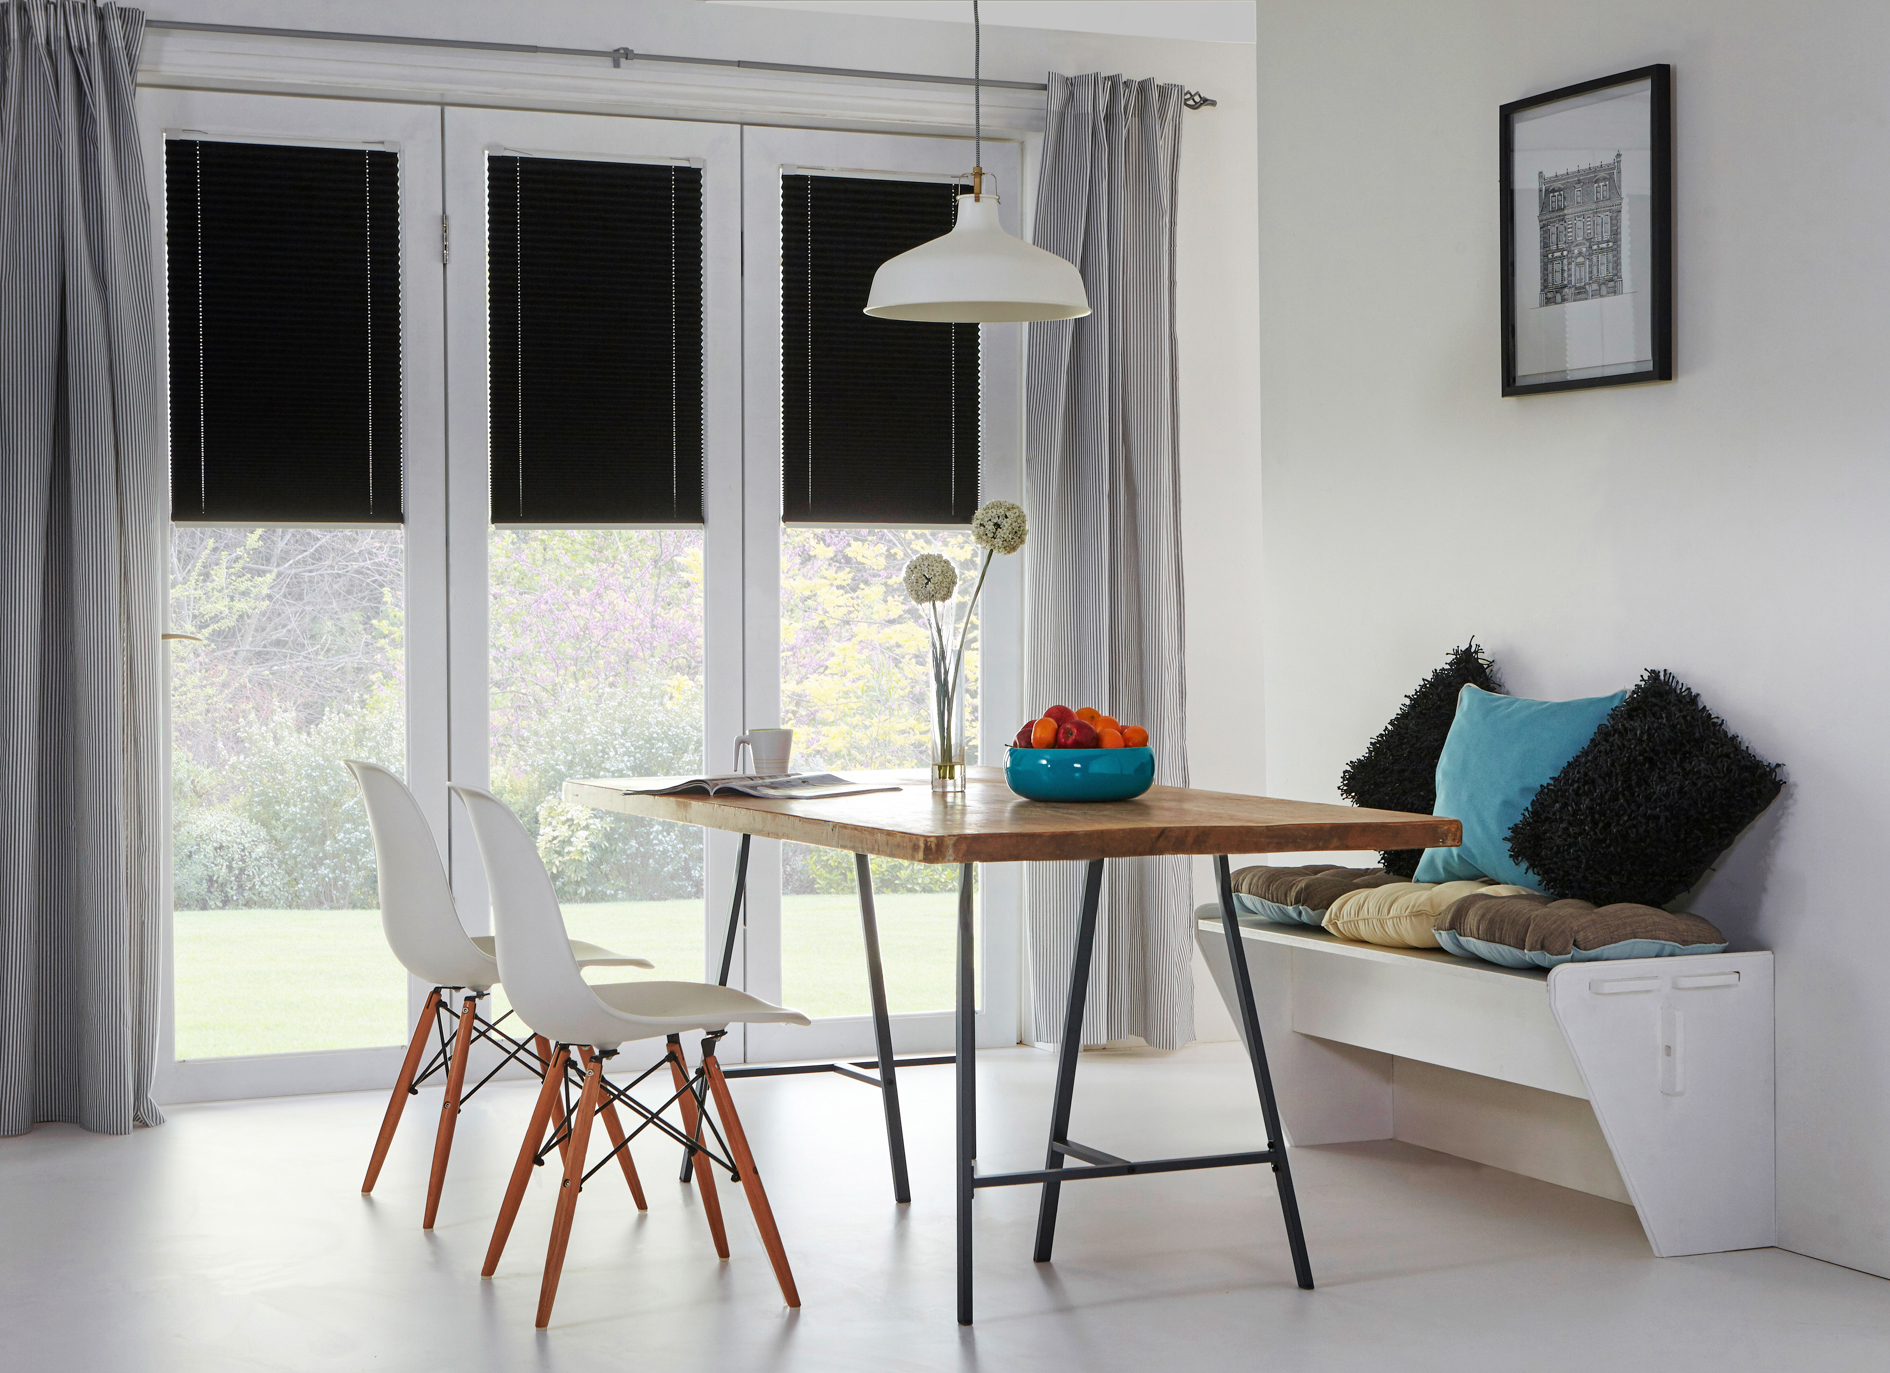 Bespoke intu blinds at Brixham blinds